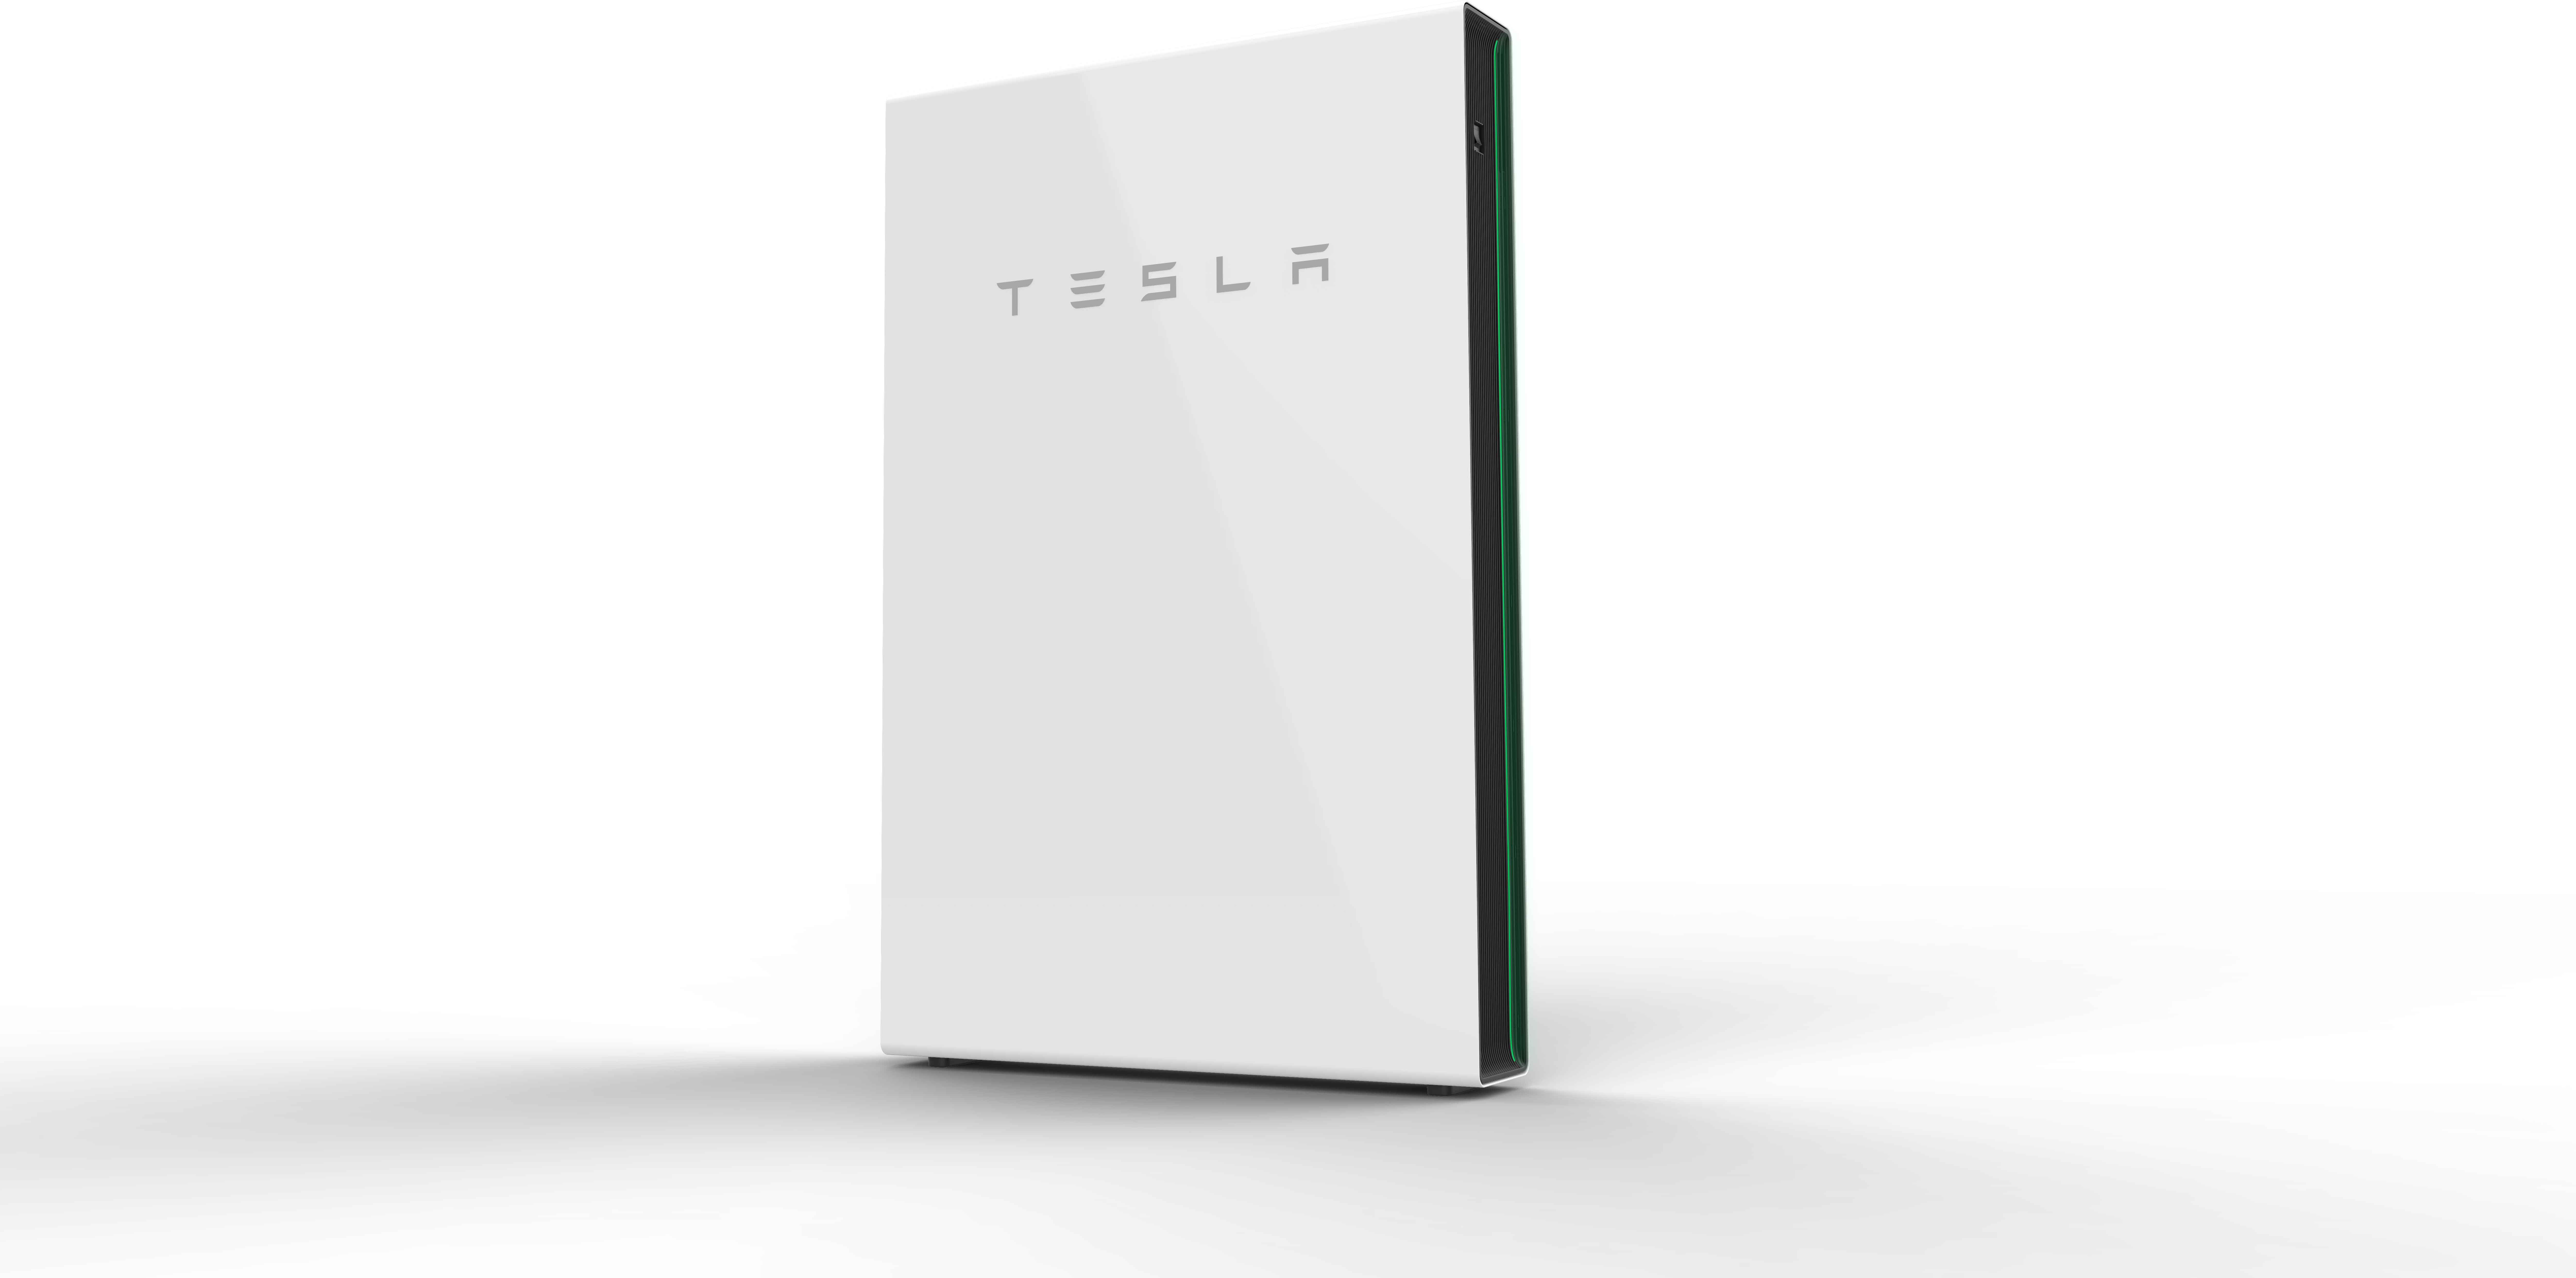 Tesla Powerwall 2 Battery Energy Storage